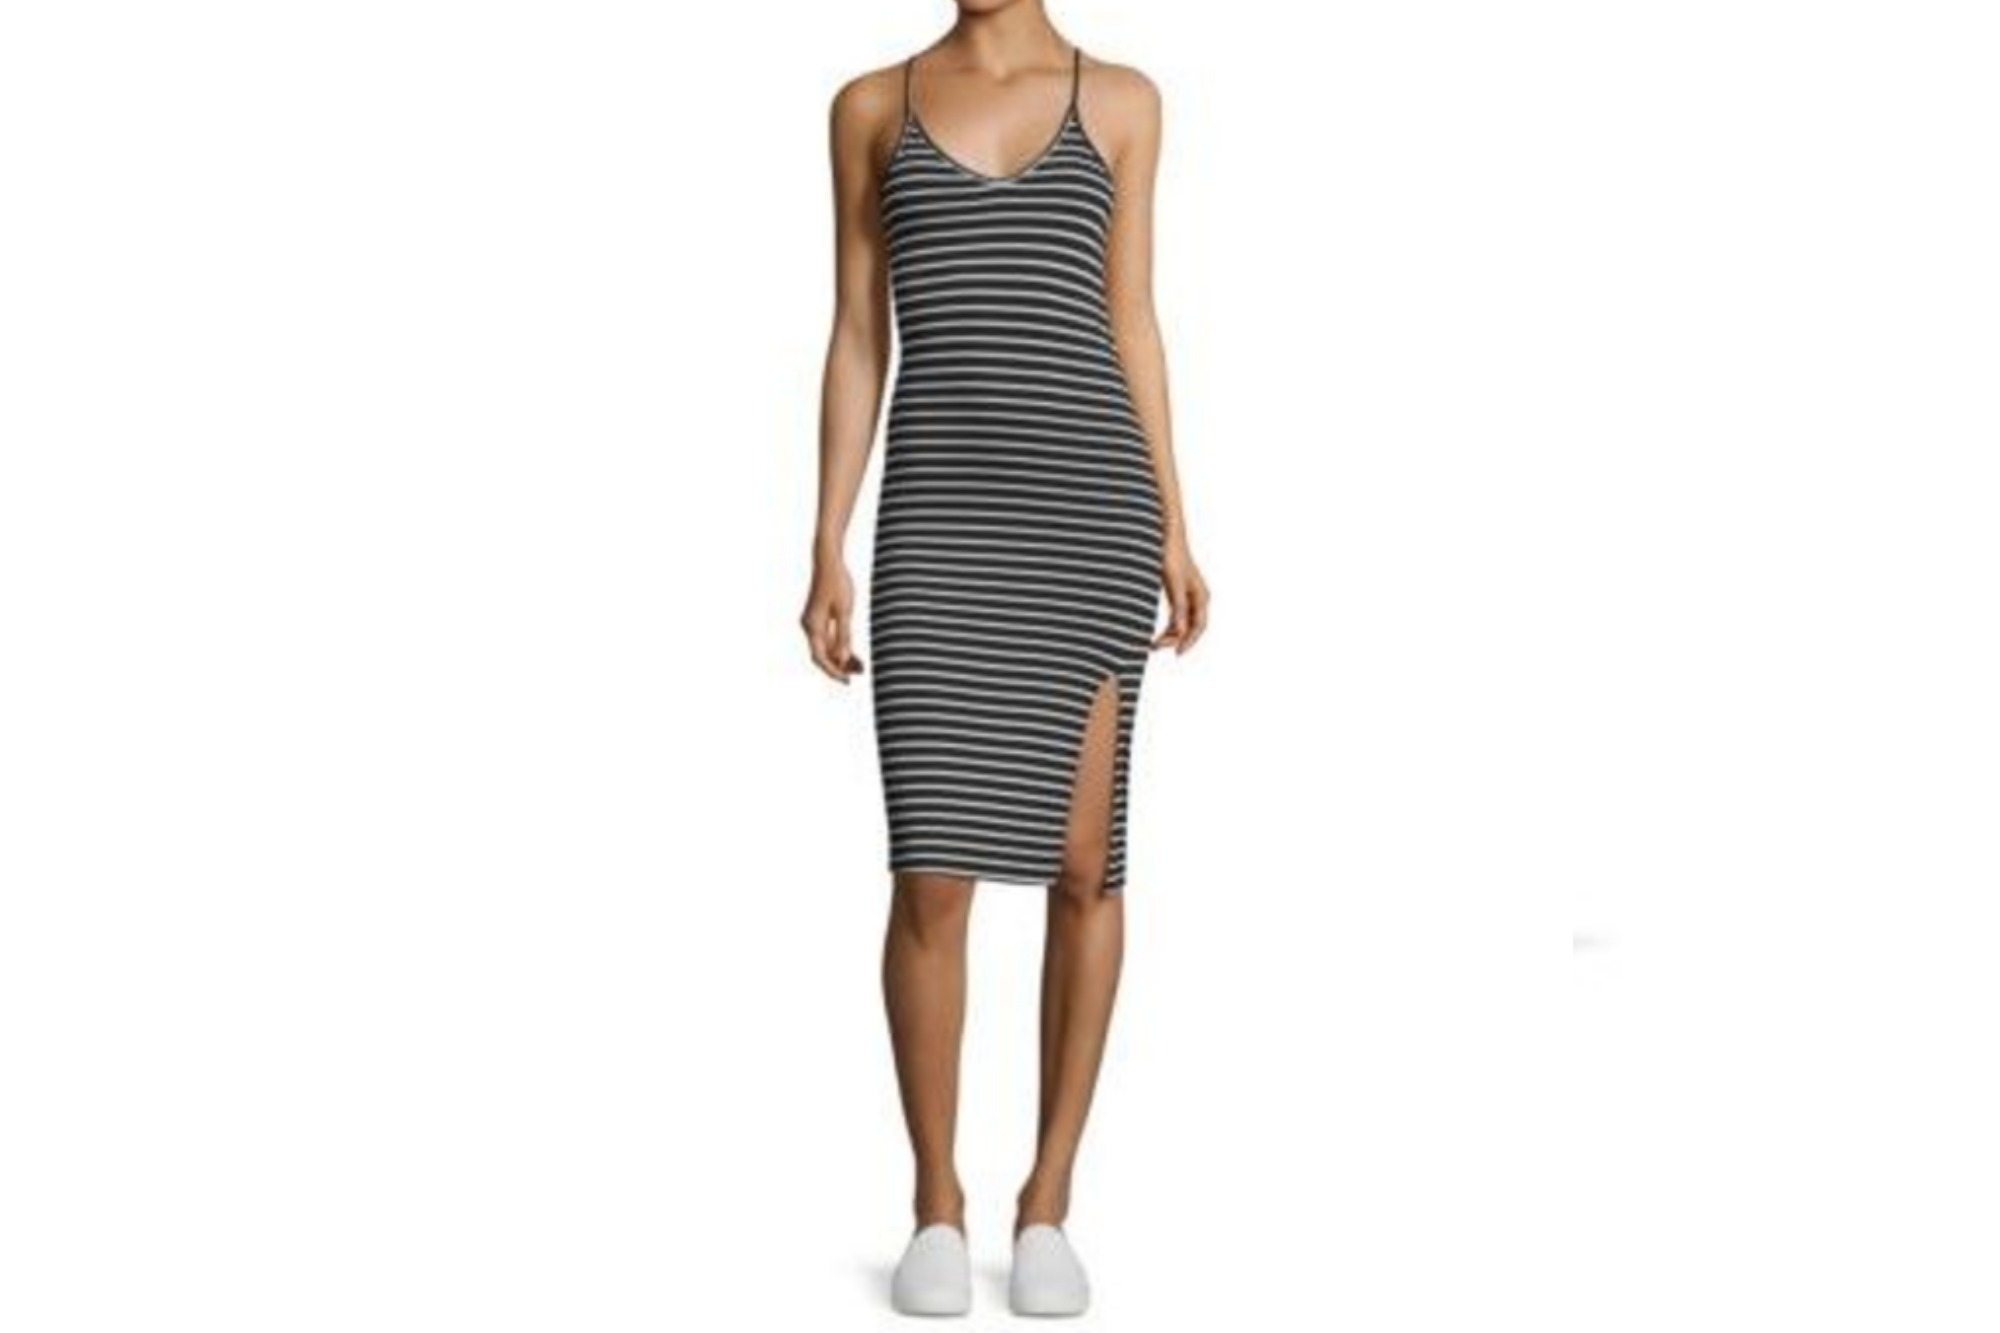 A Stateside Striped Dress